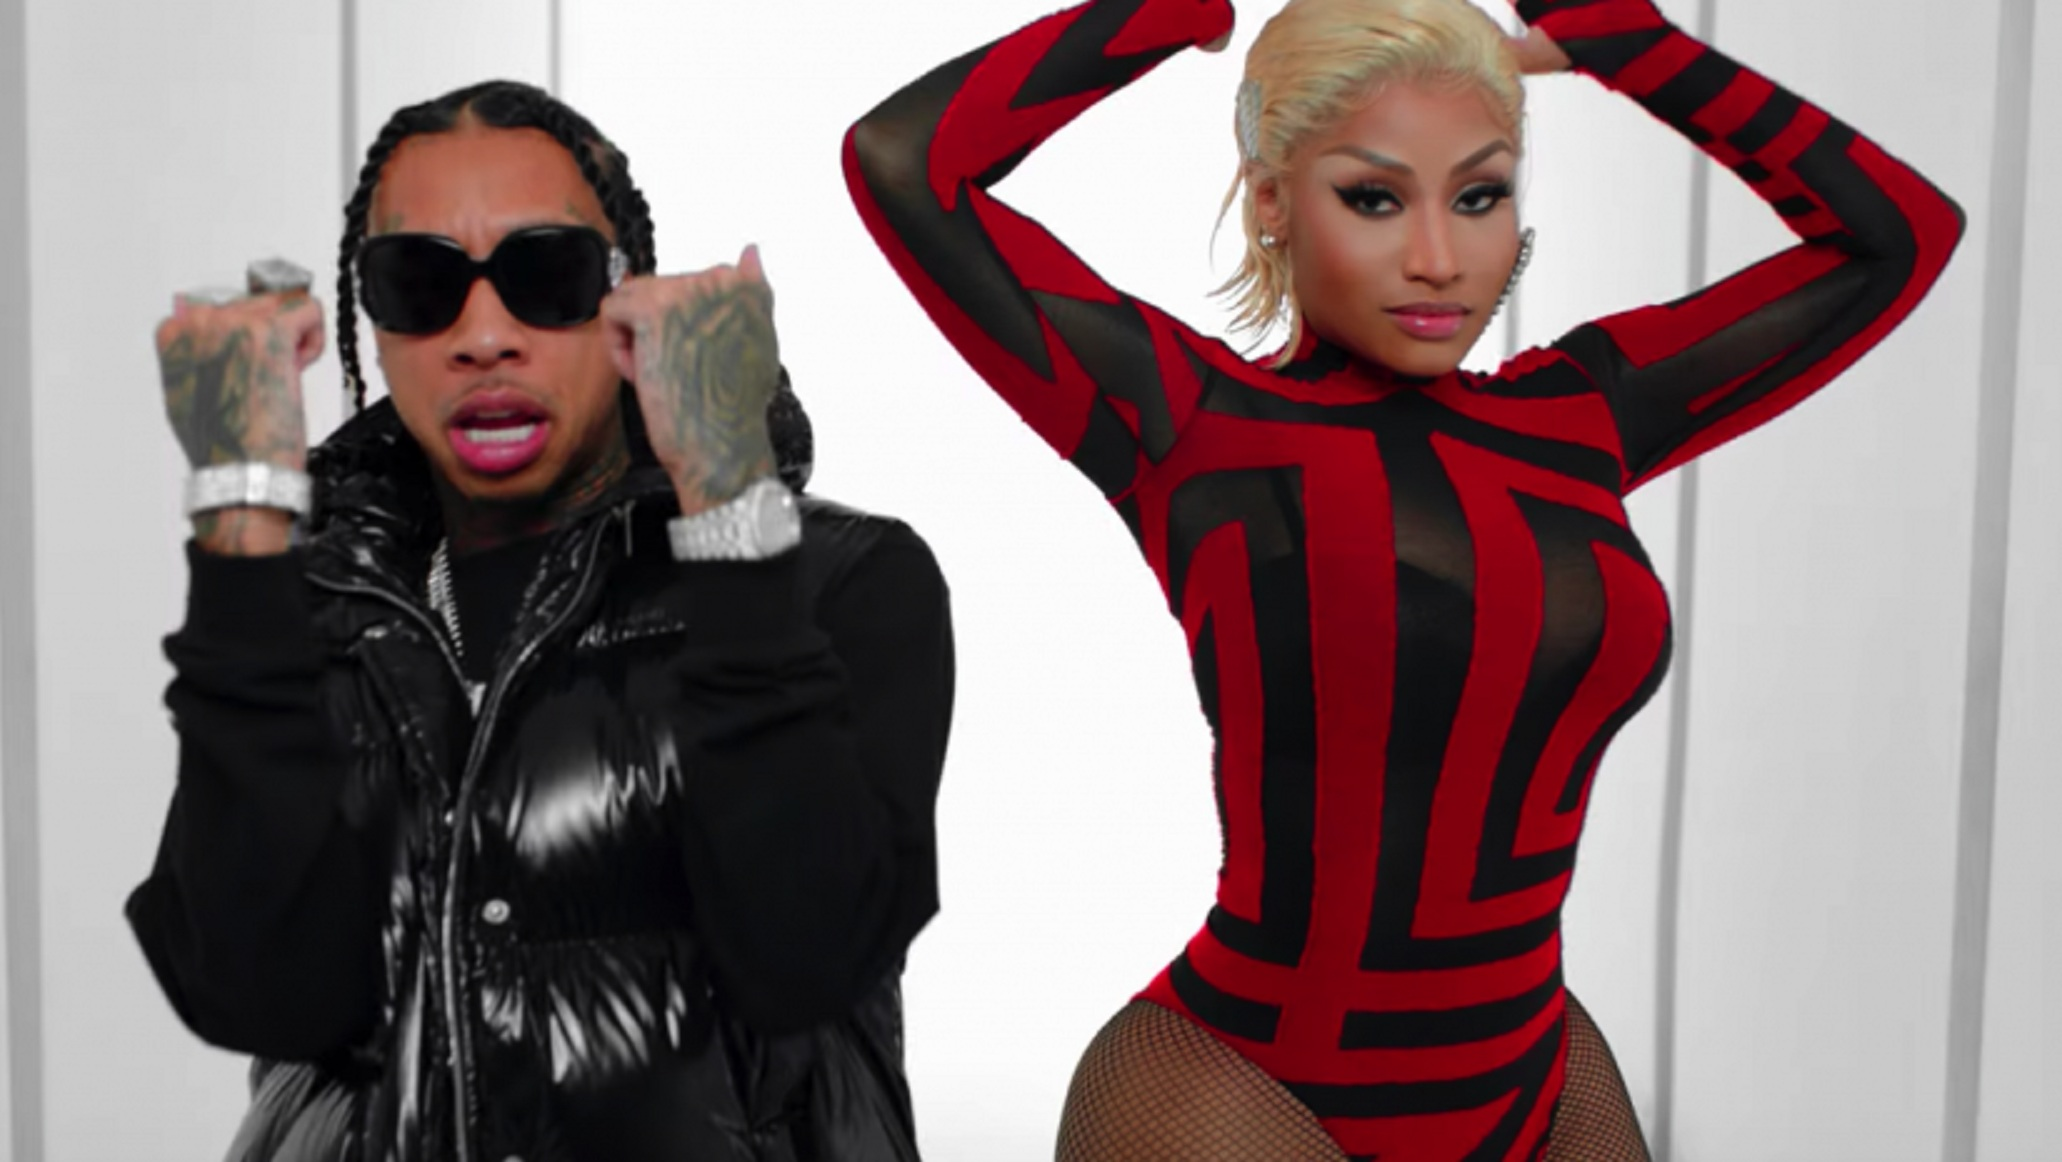 New Video: 'Dip (Remix)' by Tyga Feat. Nicki Minaj